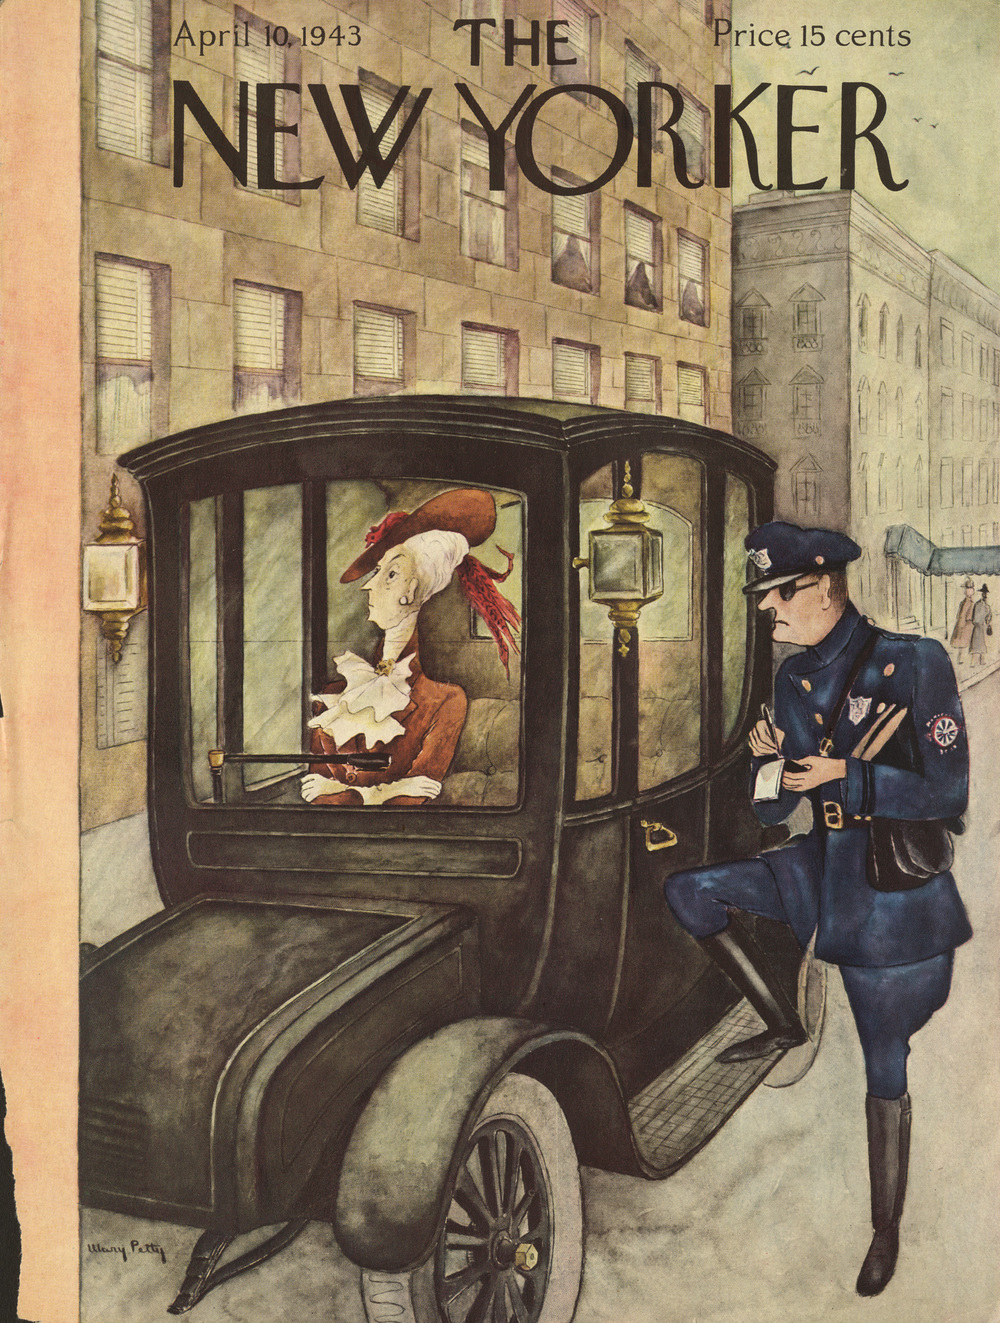 Mary Petty, cover illustration for  The New Yorker . April 10, 1943.